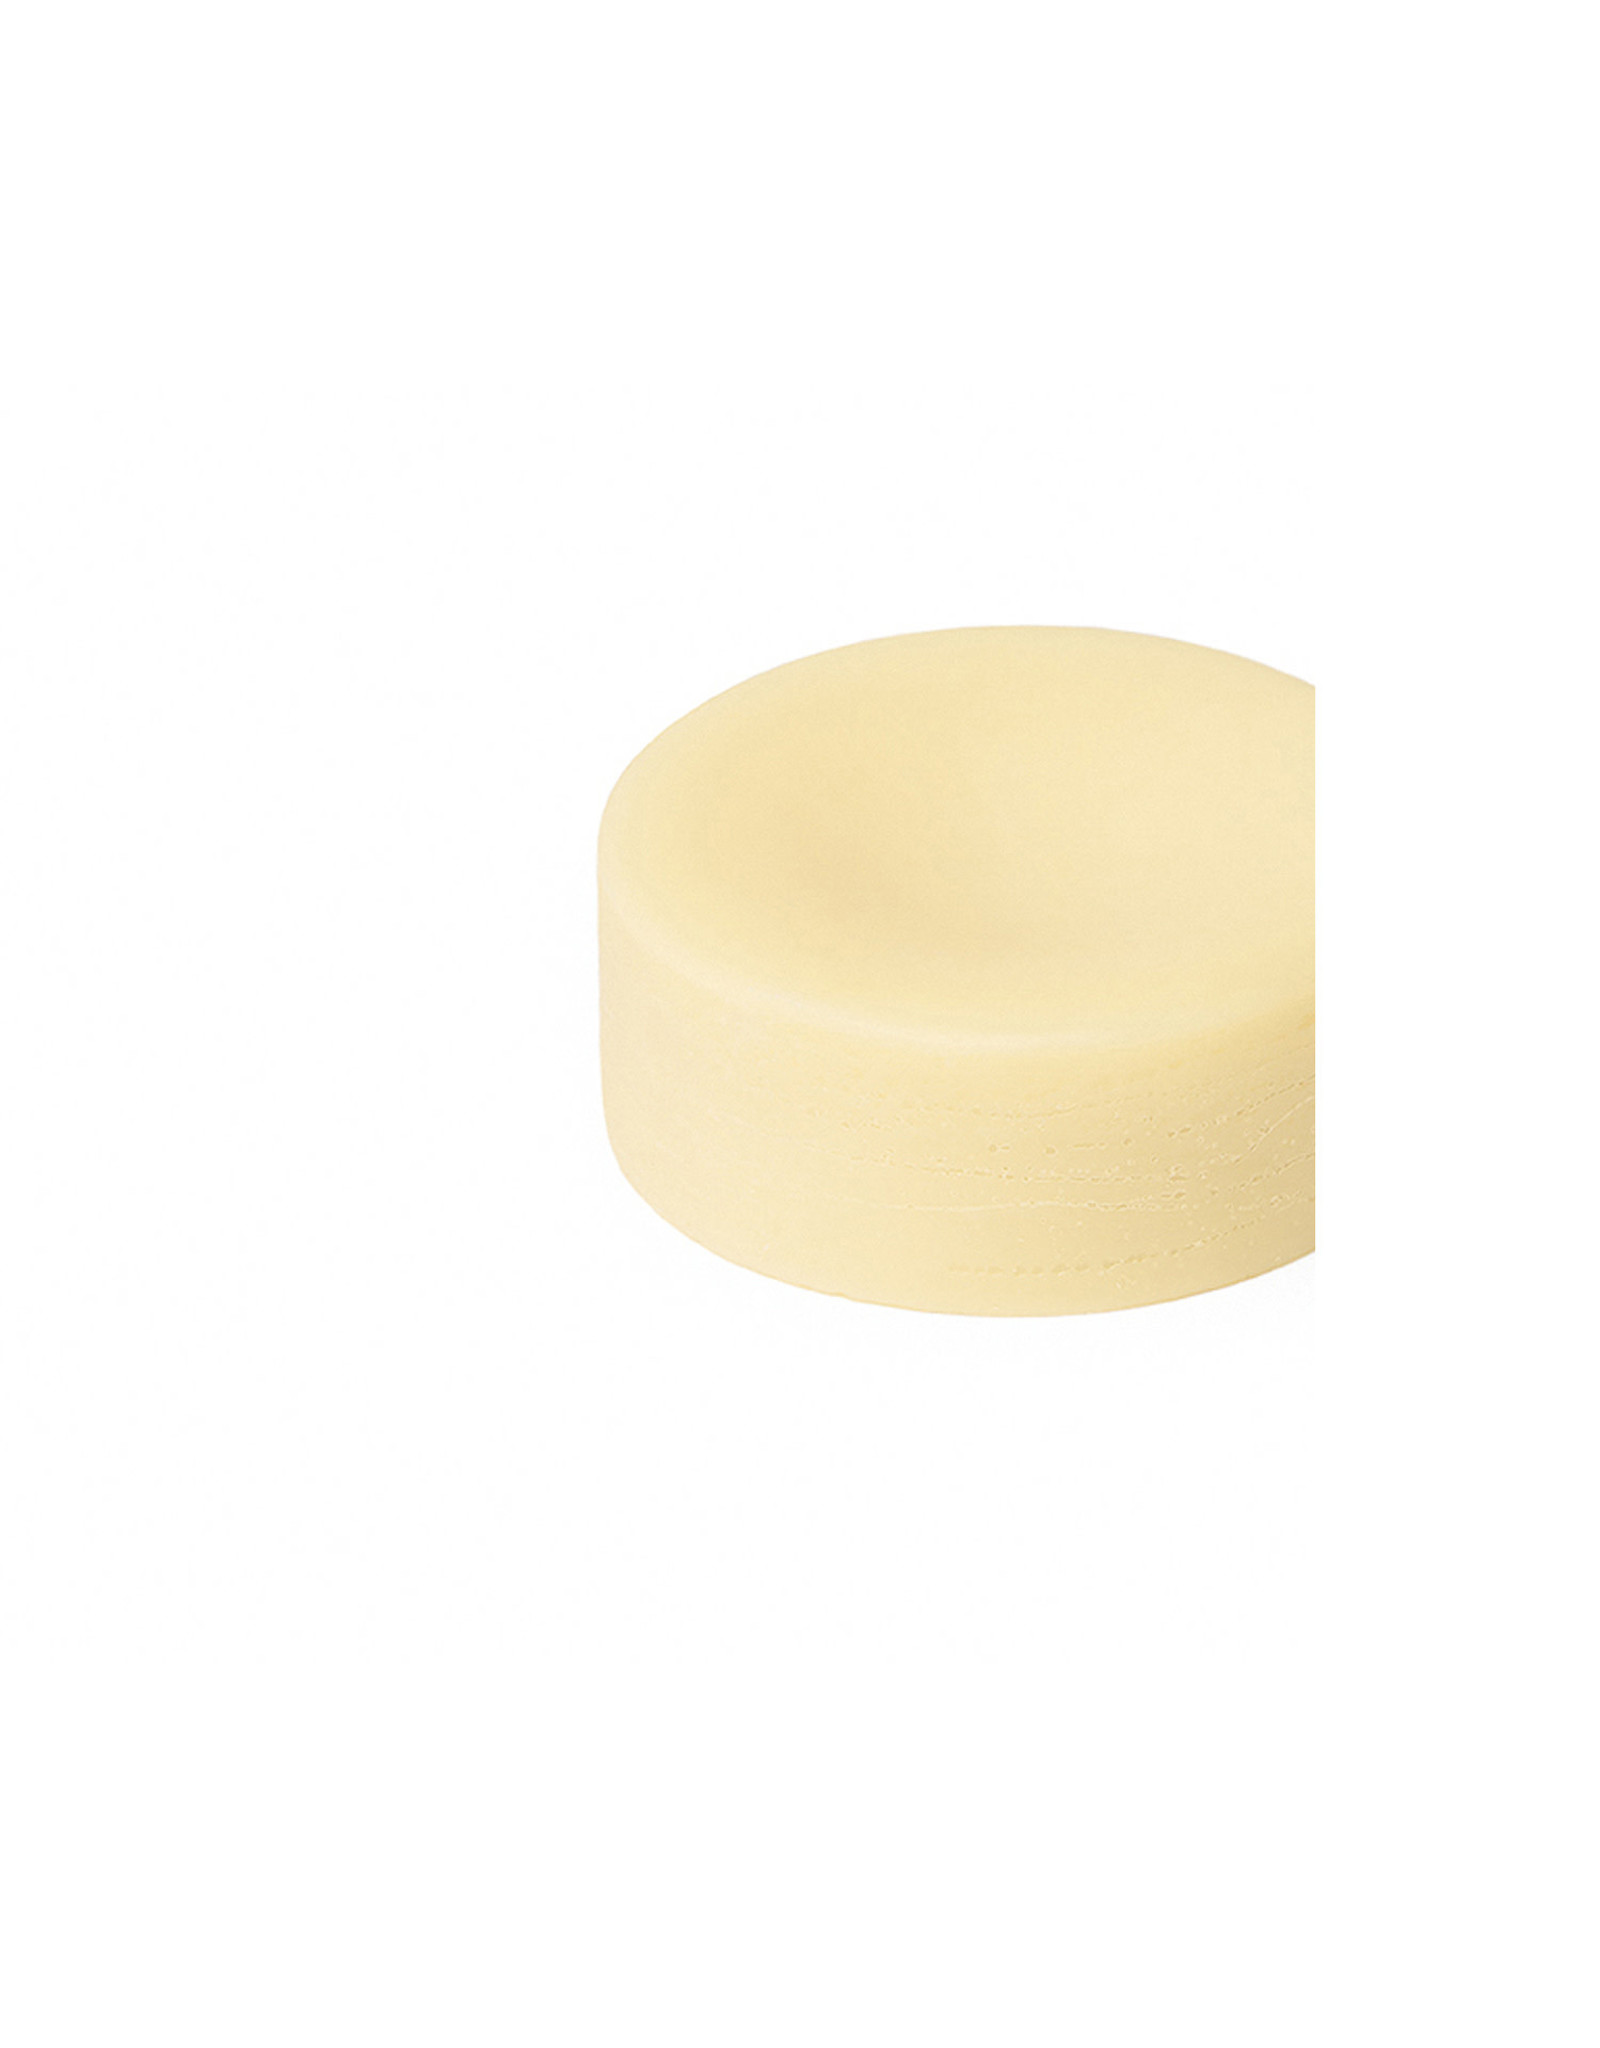 Unwrapped Life The Balancer Conditioner Bar